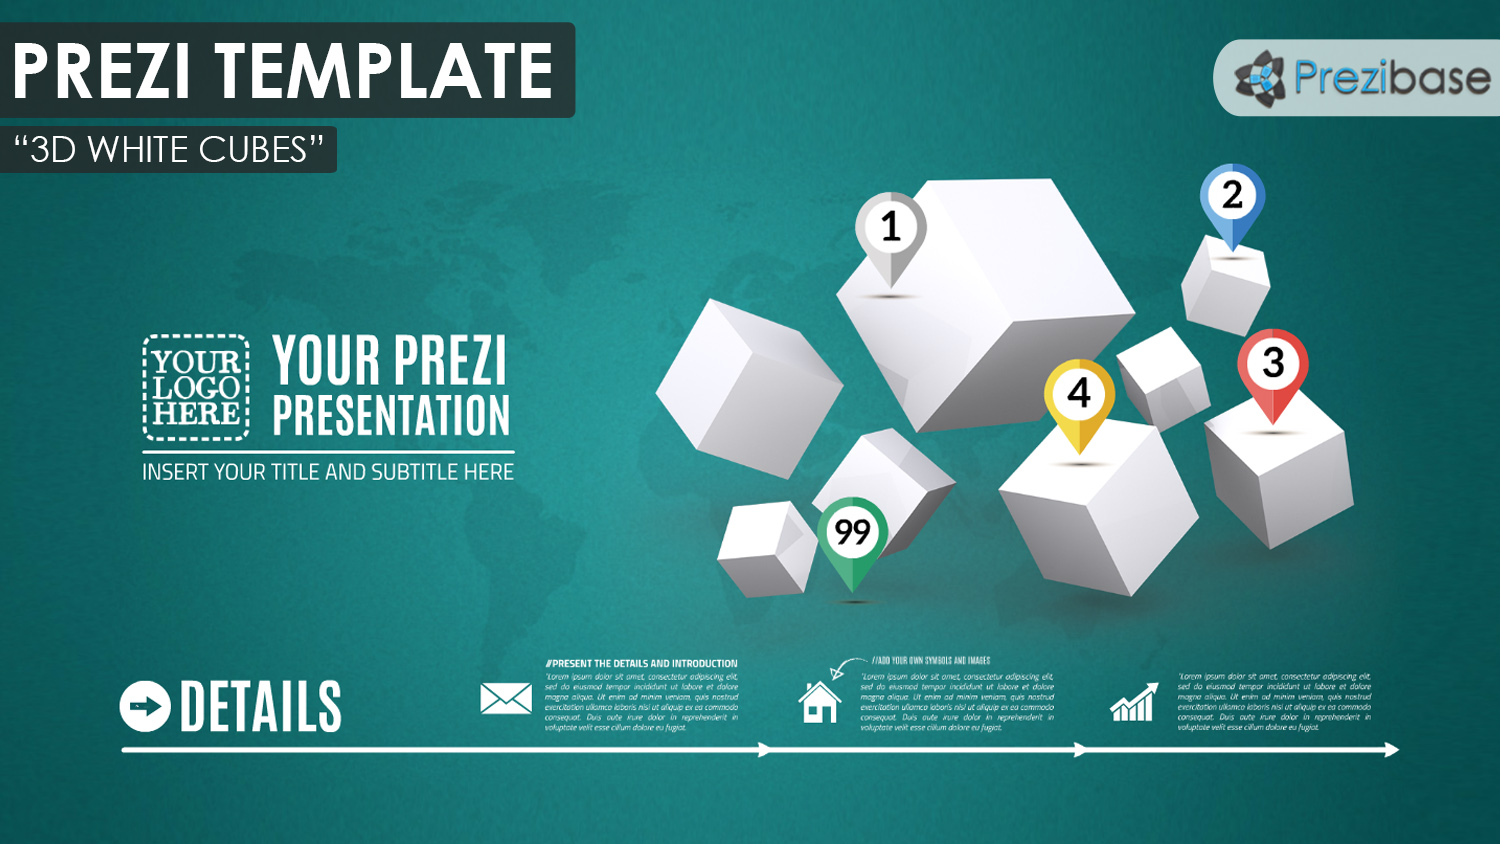 Business prezi templates prezibase 3d white cubes squares infographic business prezi template wajeb Gallery